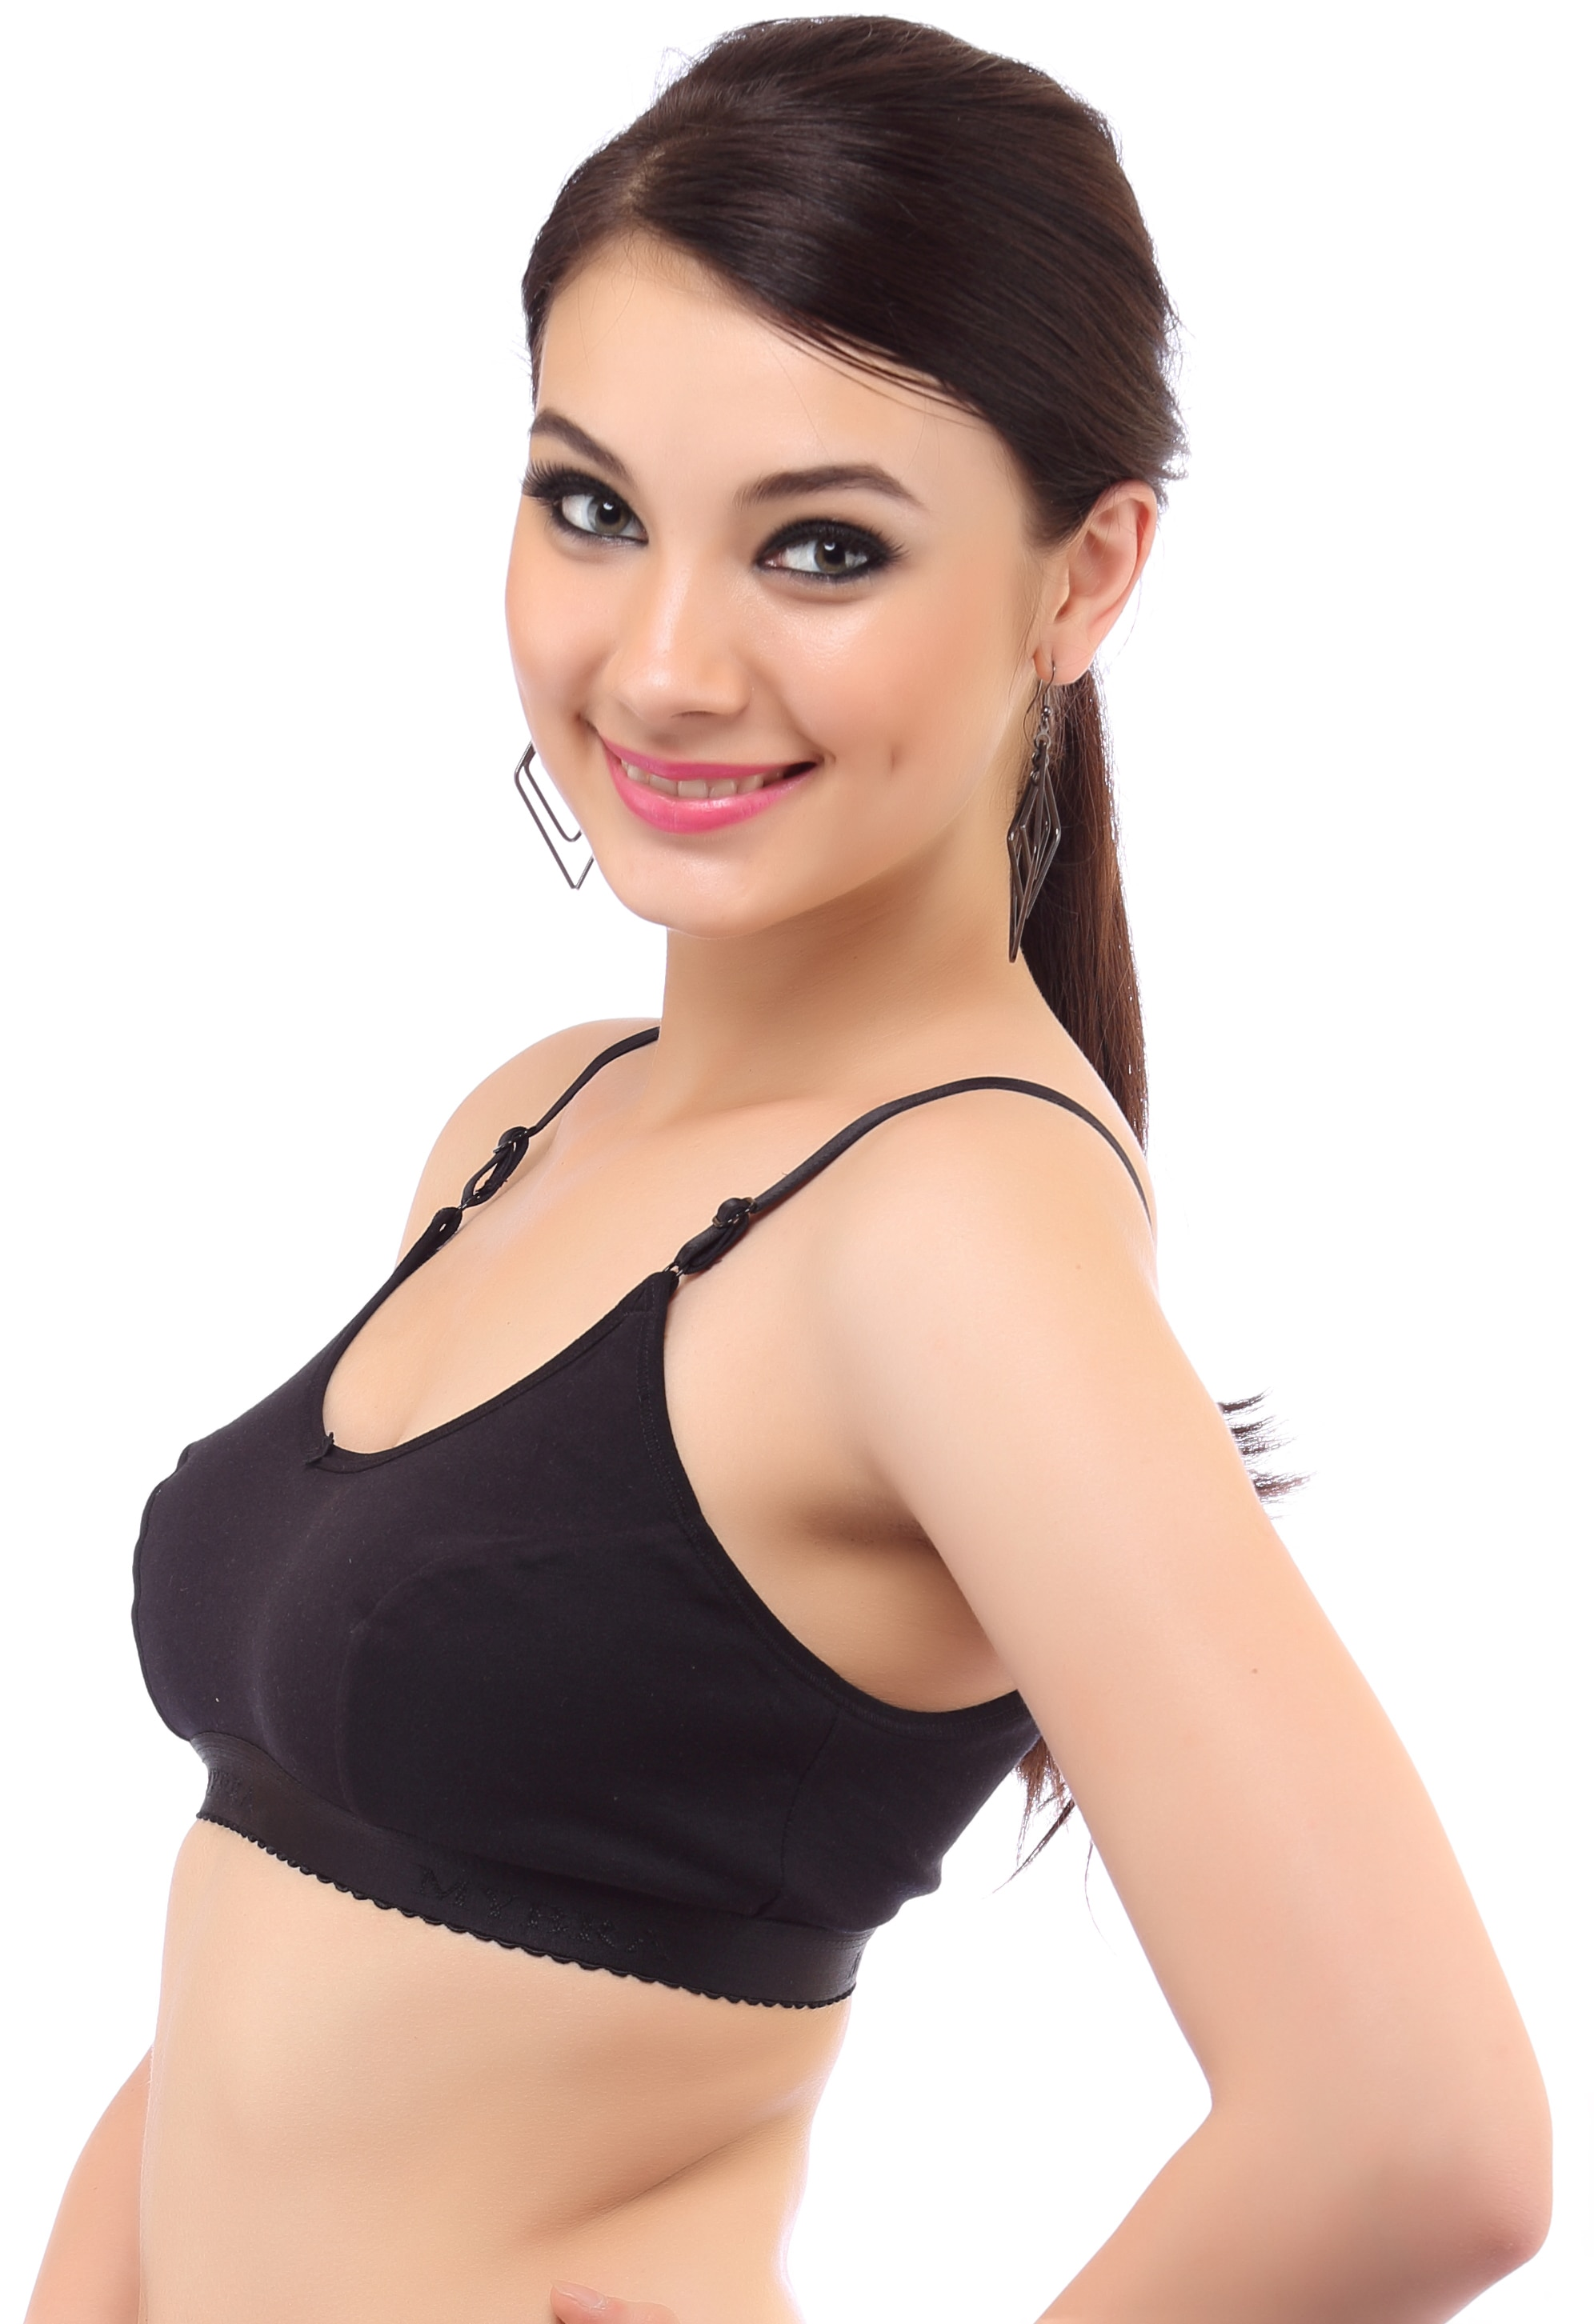 The traditional sports bra in India made from 100%  hosiery cotton fabric. The fabric is thick enough to hold the bust during rigorous movements of the body.